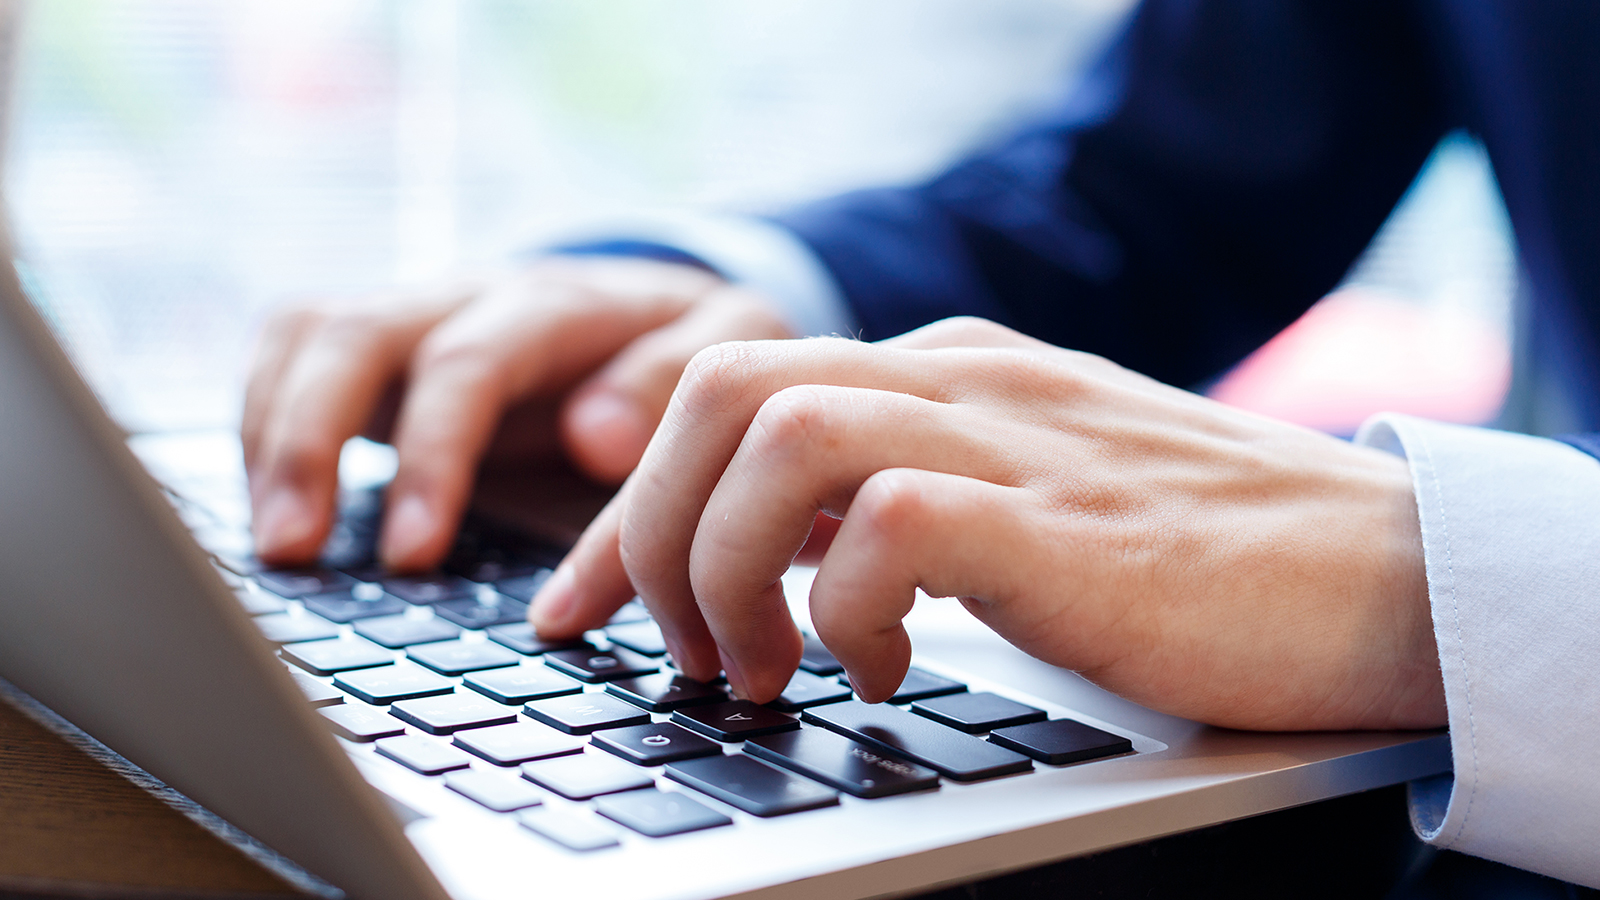 Close up of hands typing at a laptop keyboard.